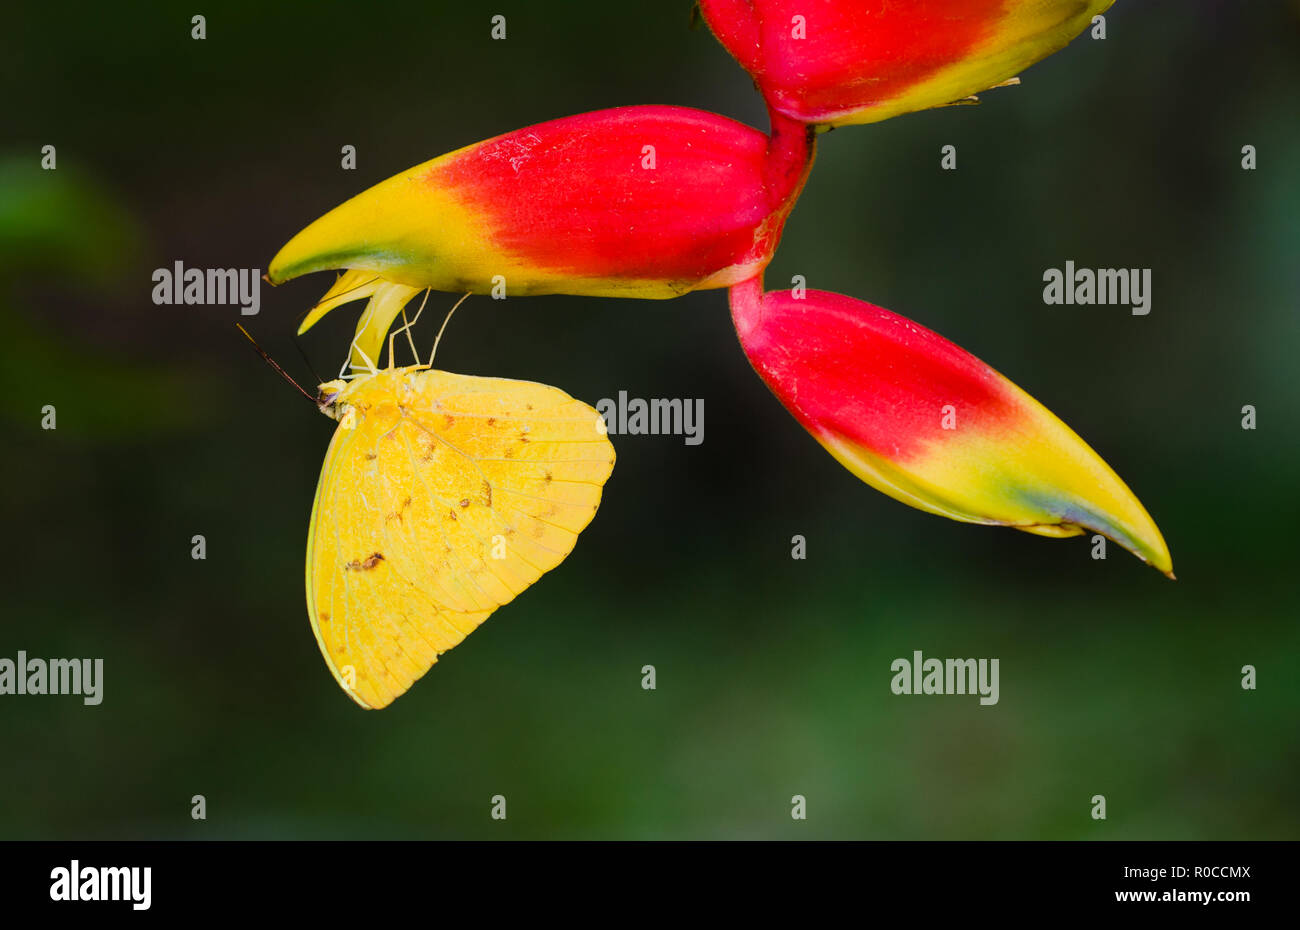 Yellow butterfly macro close-up sitting upside down on the hanging tropical flower Heliconia (Heliconia pendula) against a green out of focus backgrou - Stock Image